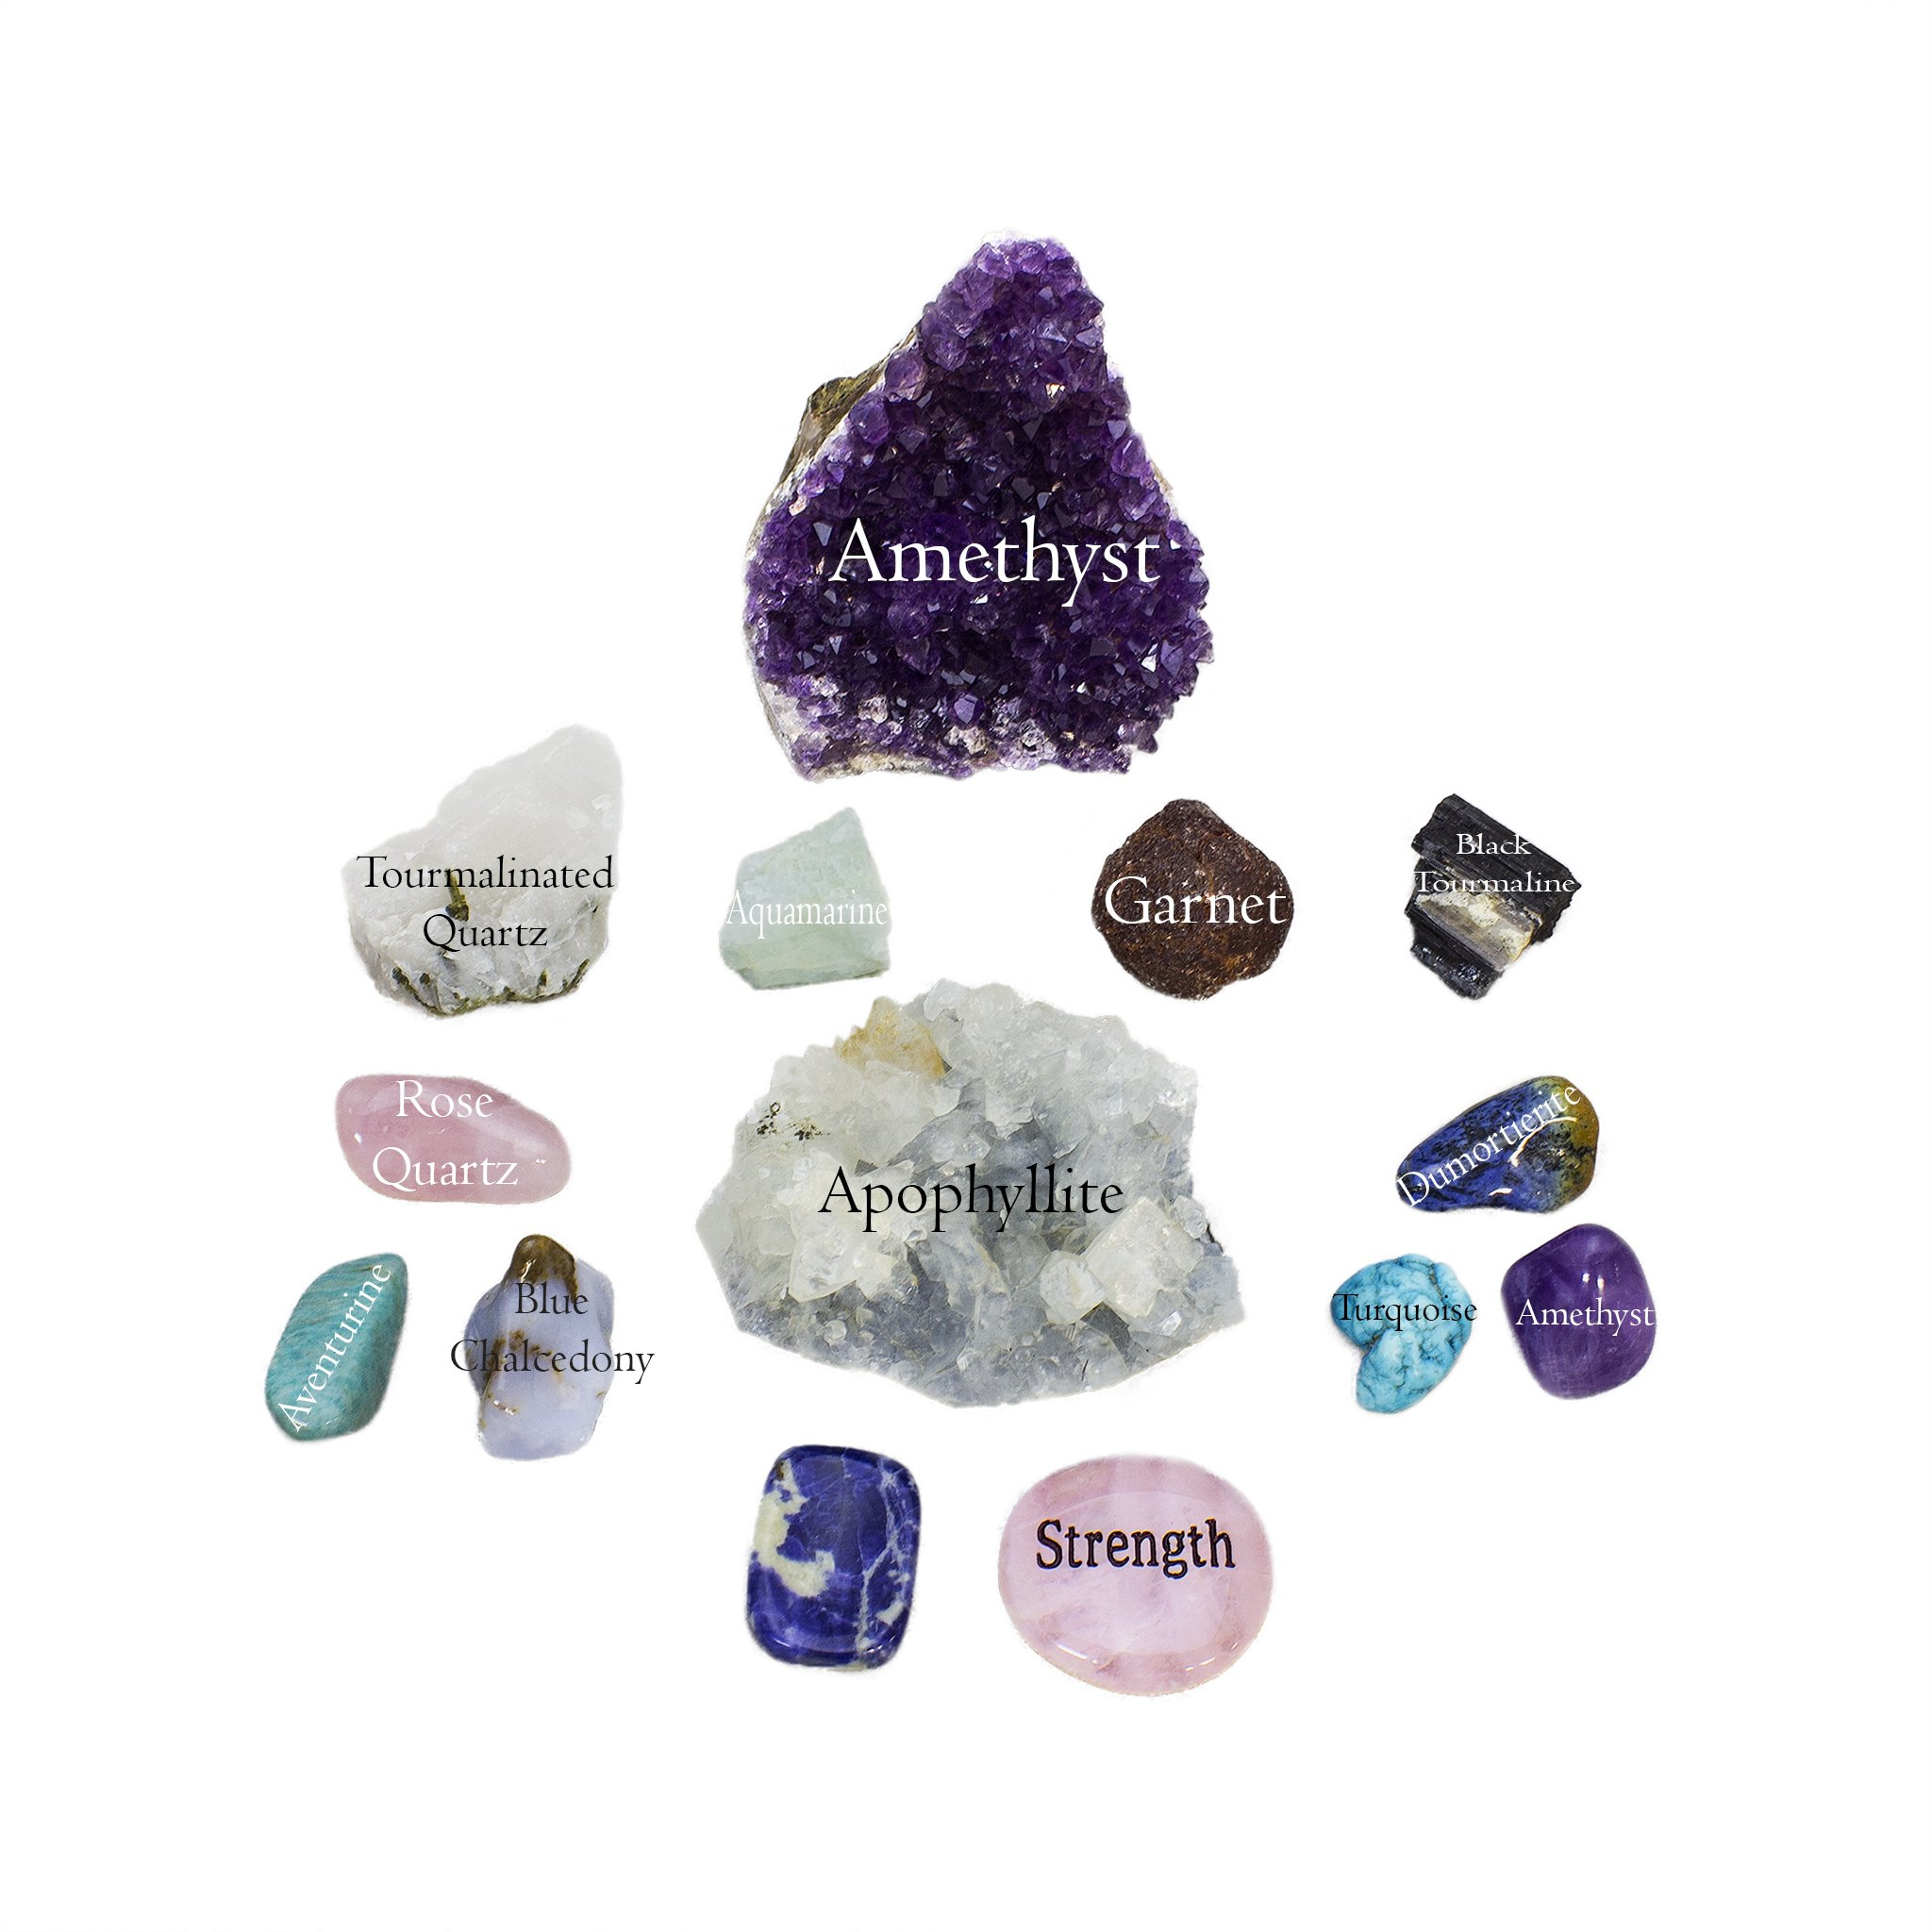 Anxiety and Worry Bundle 14pc Quality Handpicked Healing Crystals; Stones to Calm Stress, Reverse Negativity; For Meditation, Self-Worth, and Expression; All Natural Gems w/ Raw and Tumbled Finishes by RubyDubyDu